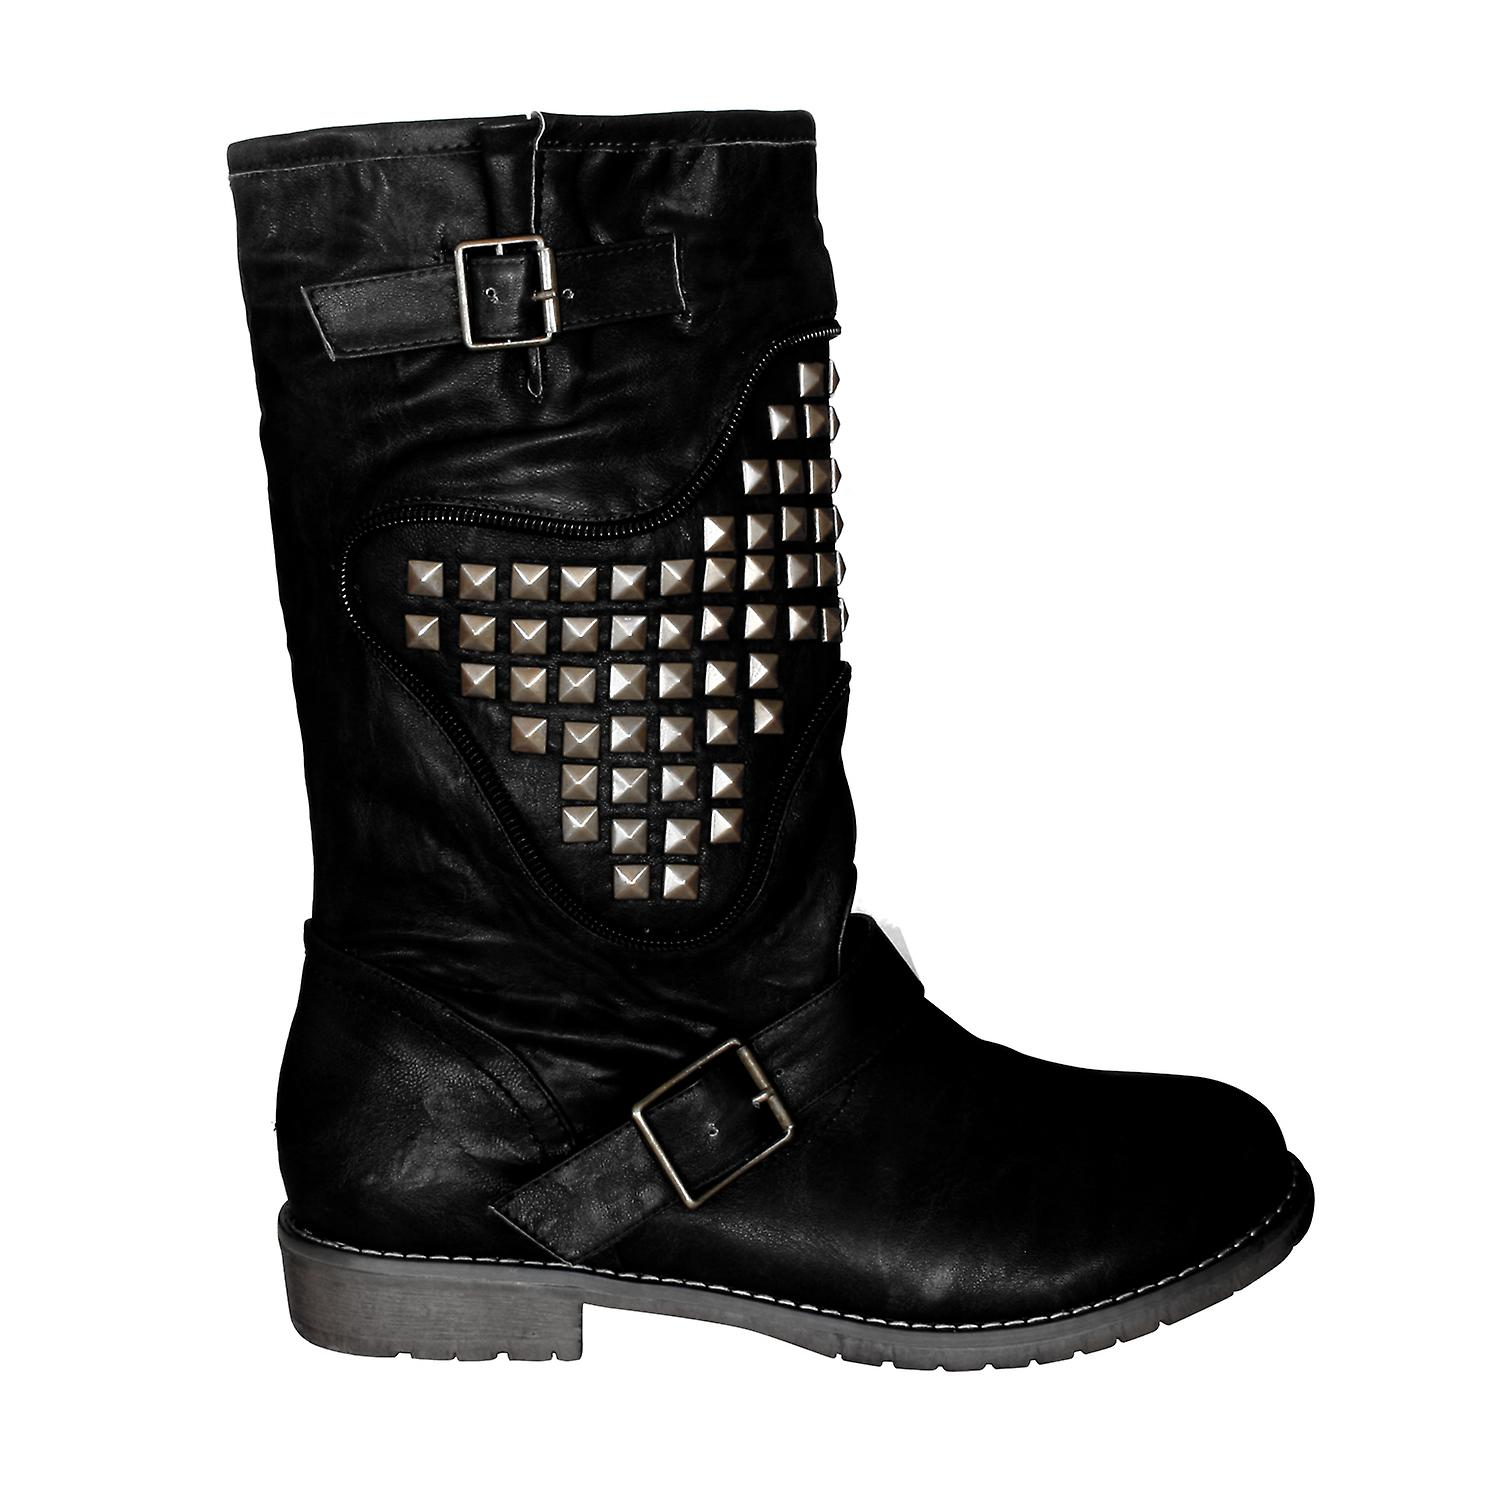 Waooh - Fashion - Boots